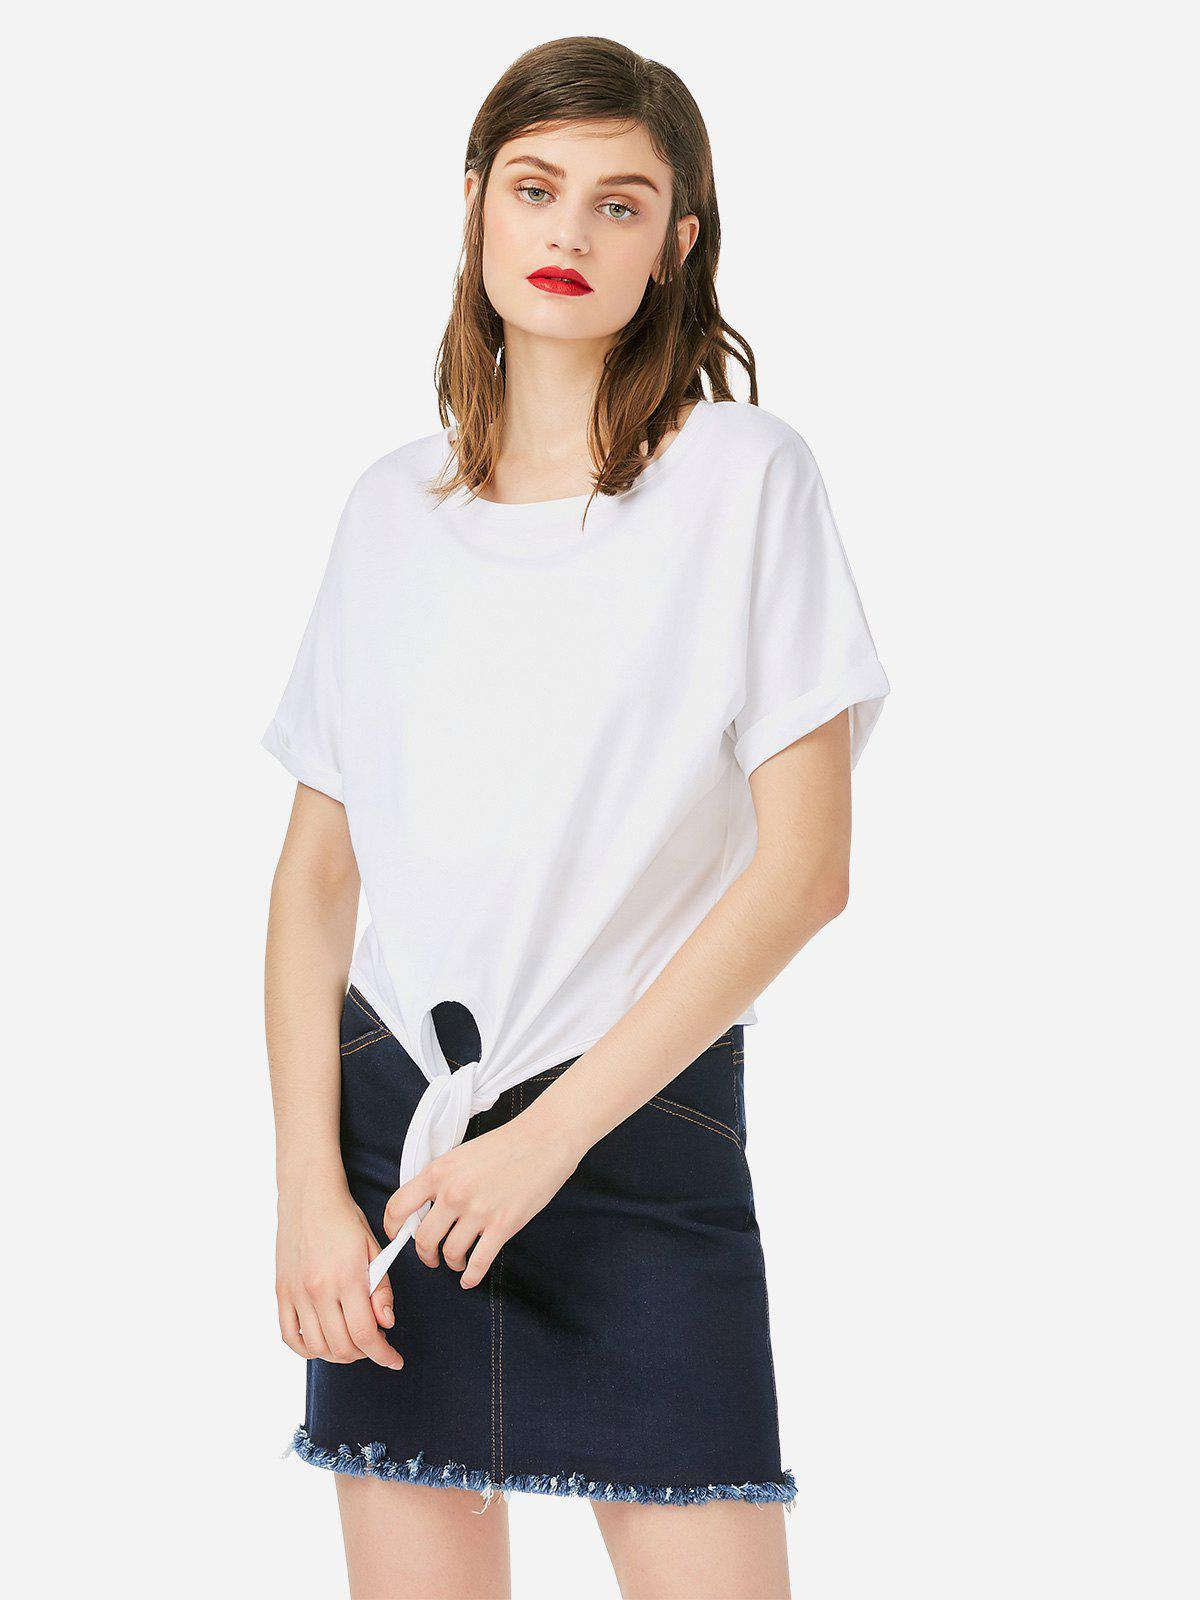 ZAN.STYLE Crew Neck Knotted T-shirt